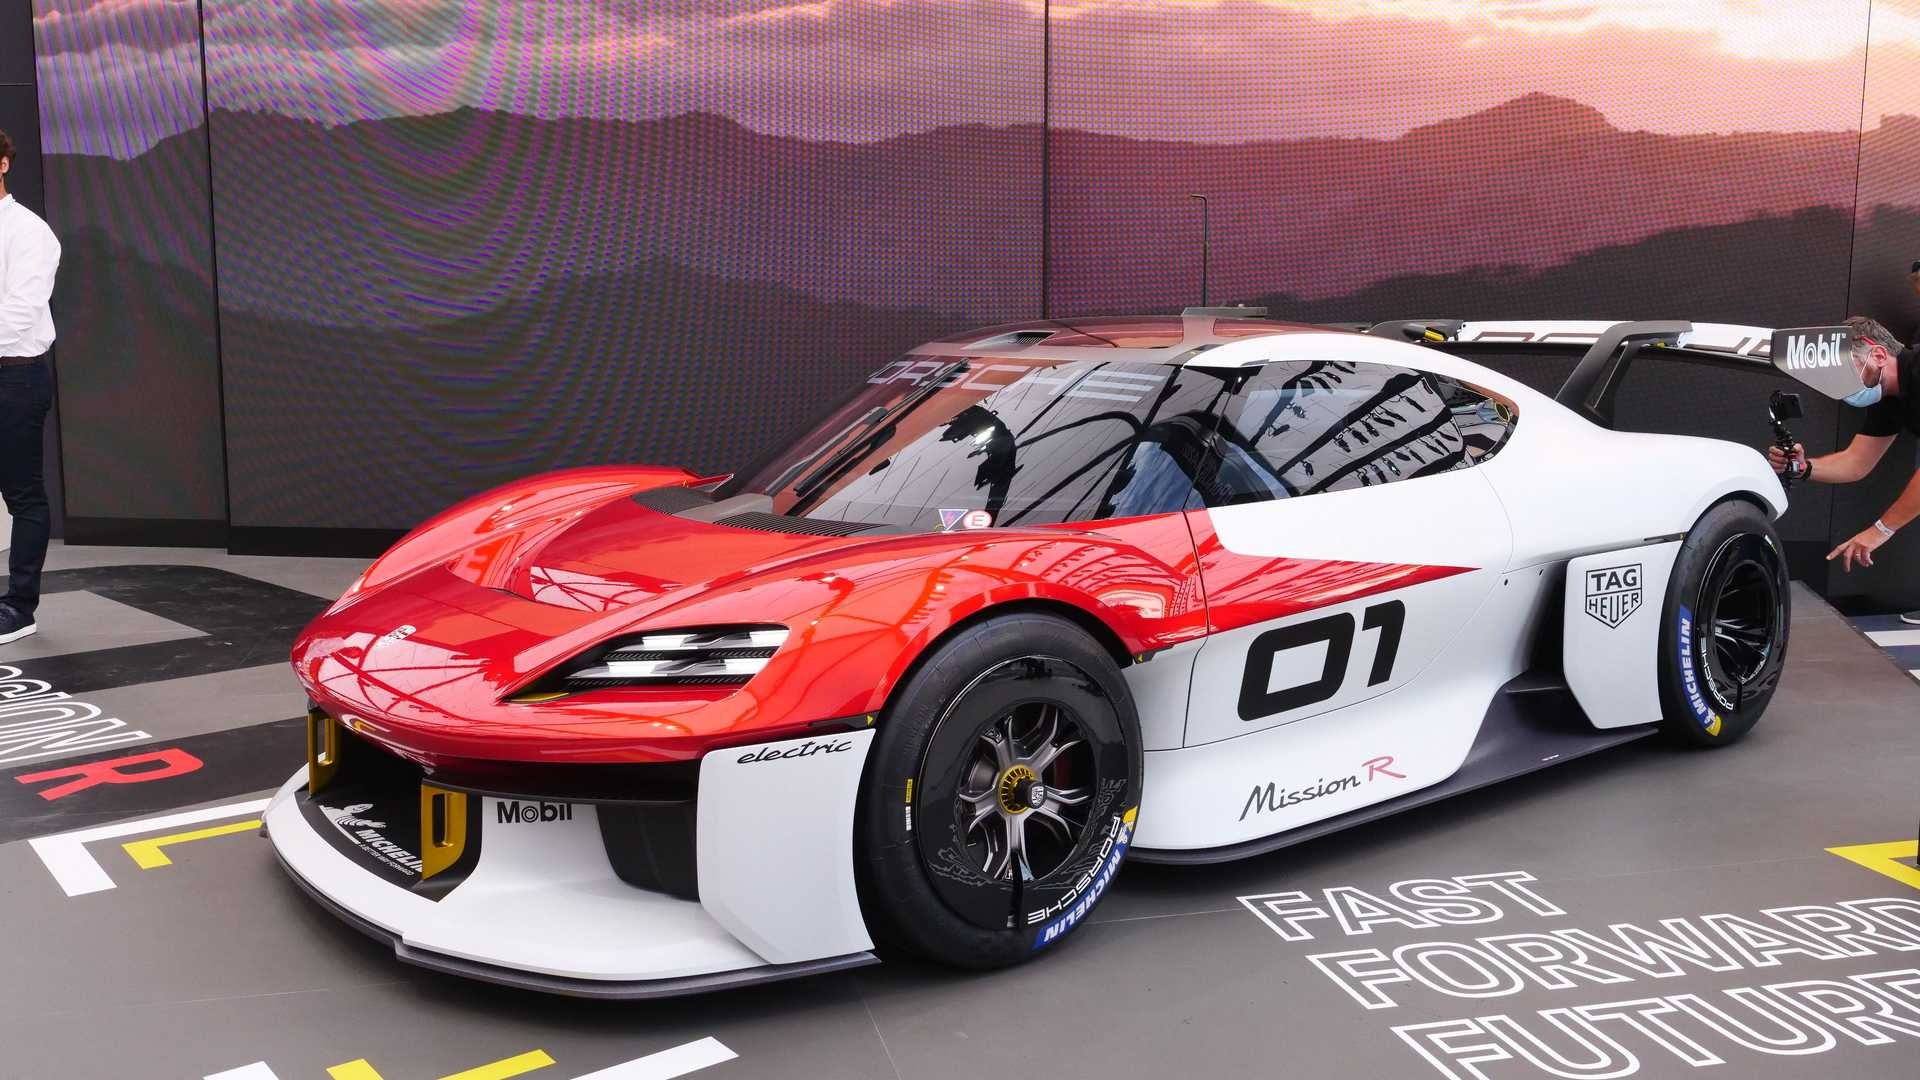 live-photos-of-porsche-mission-r-from-iaa-2021.jpg